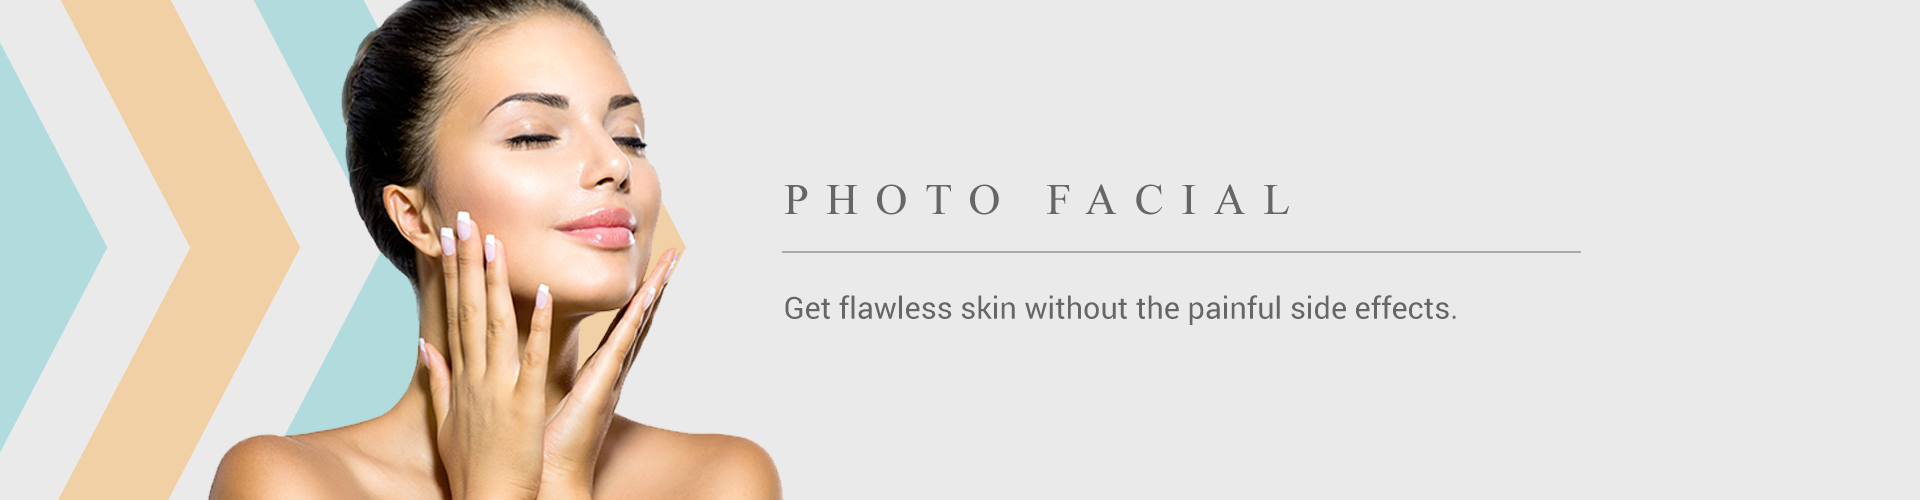 photo-facial-header